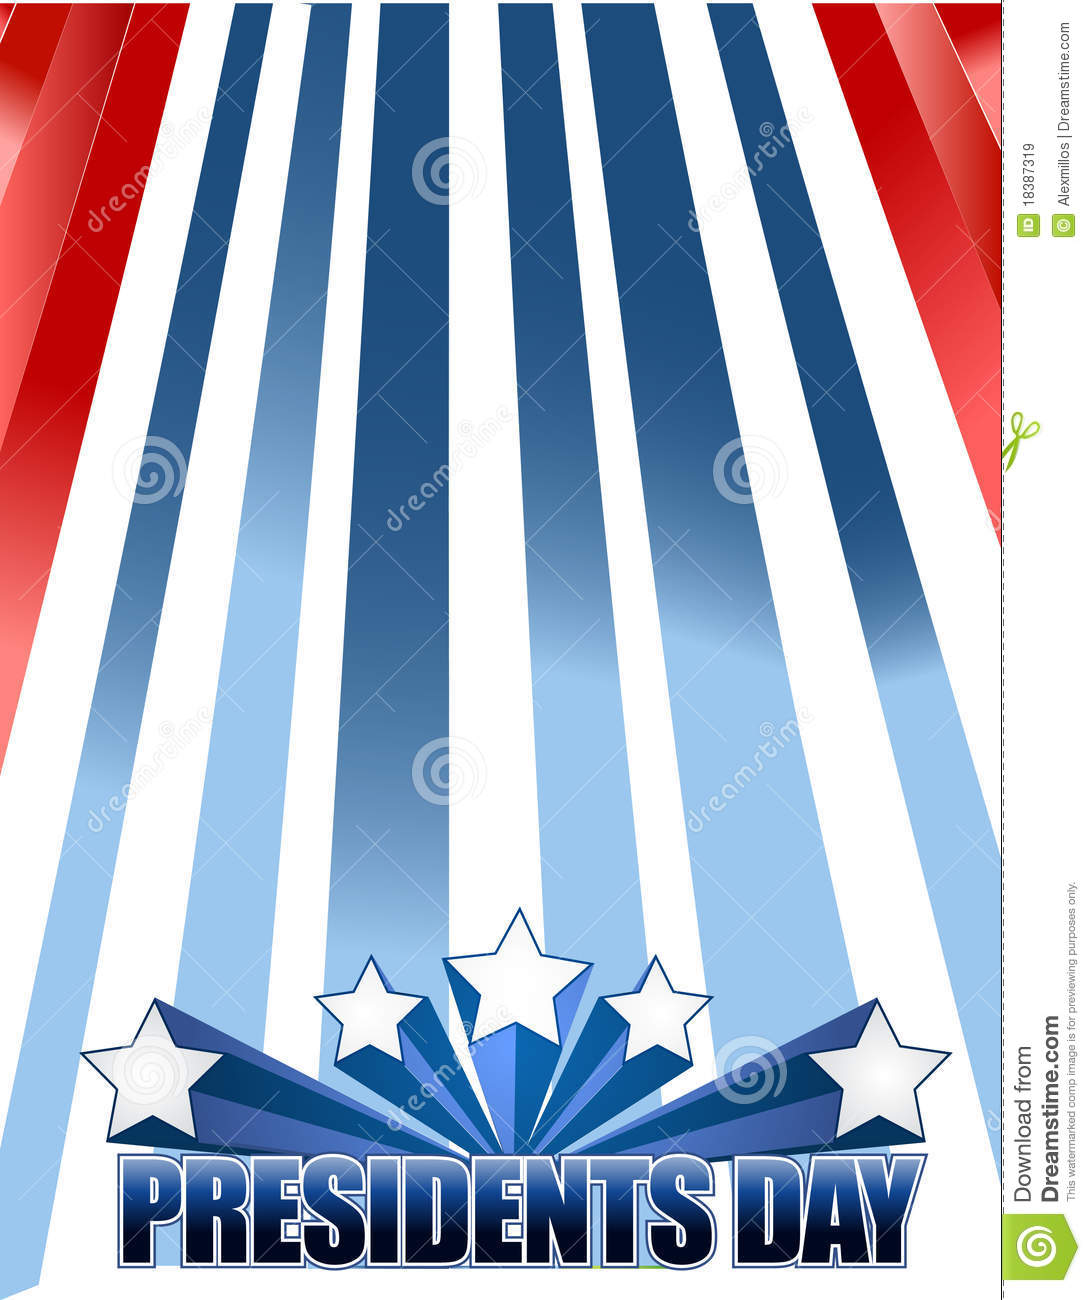 Extended Presidents Day: Presidents Day Stock Vector. Illustration Of Retail